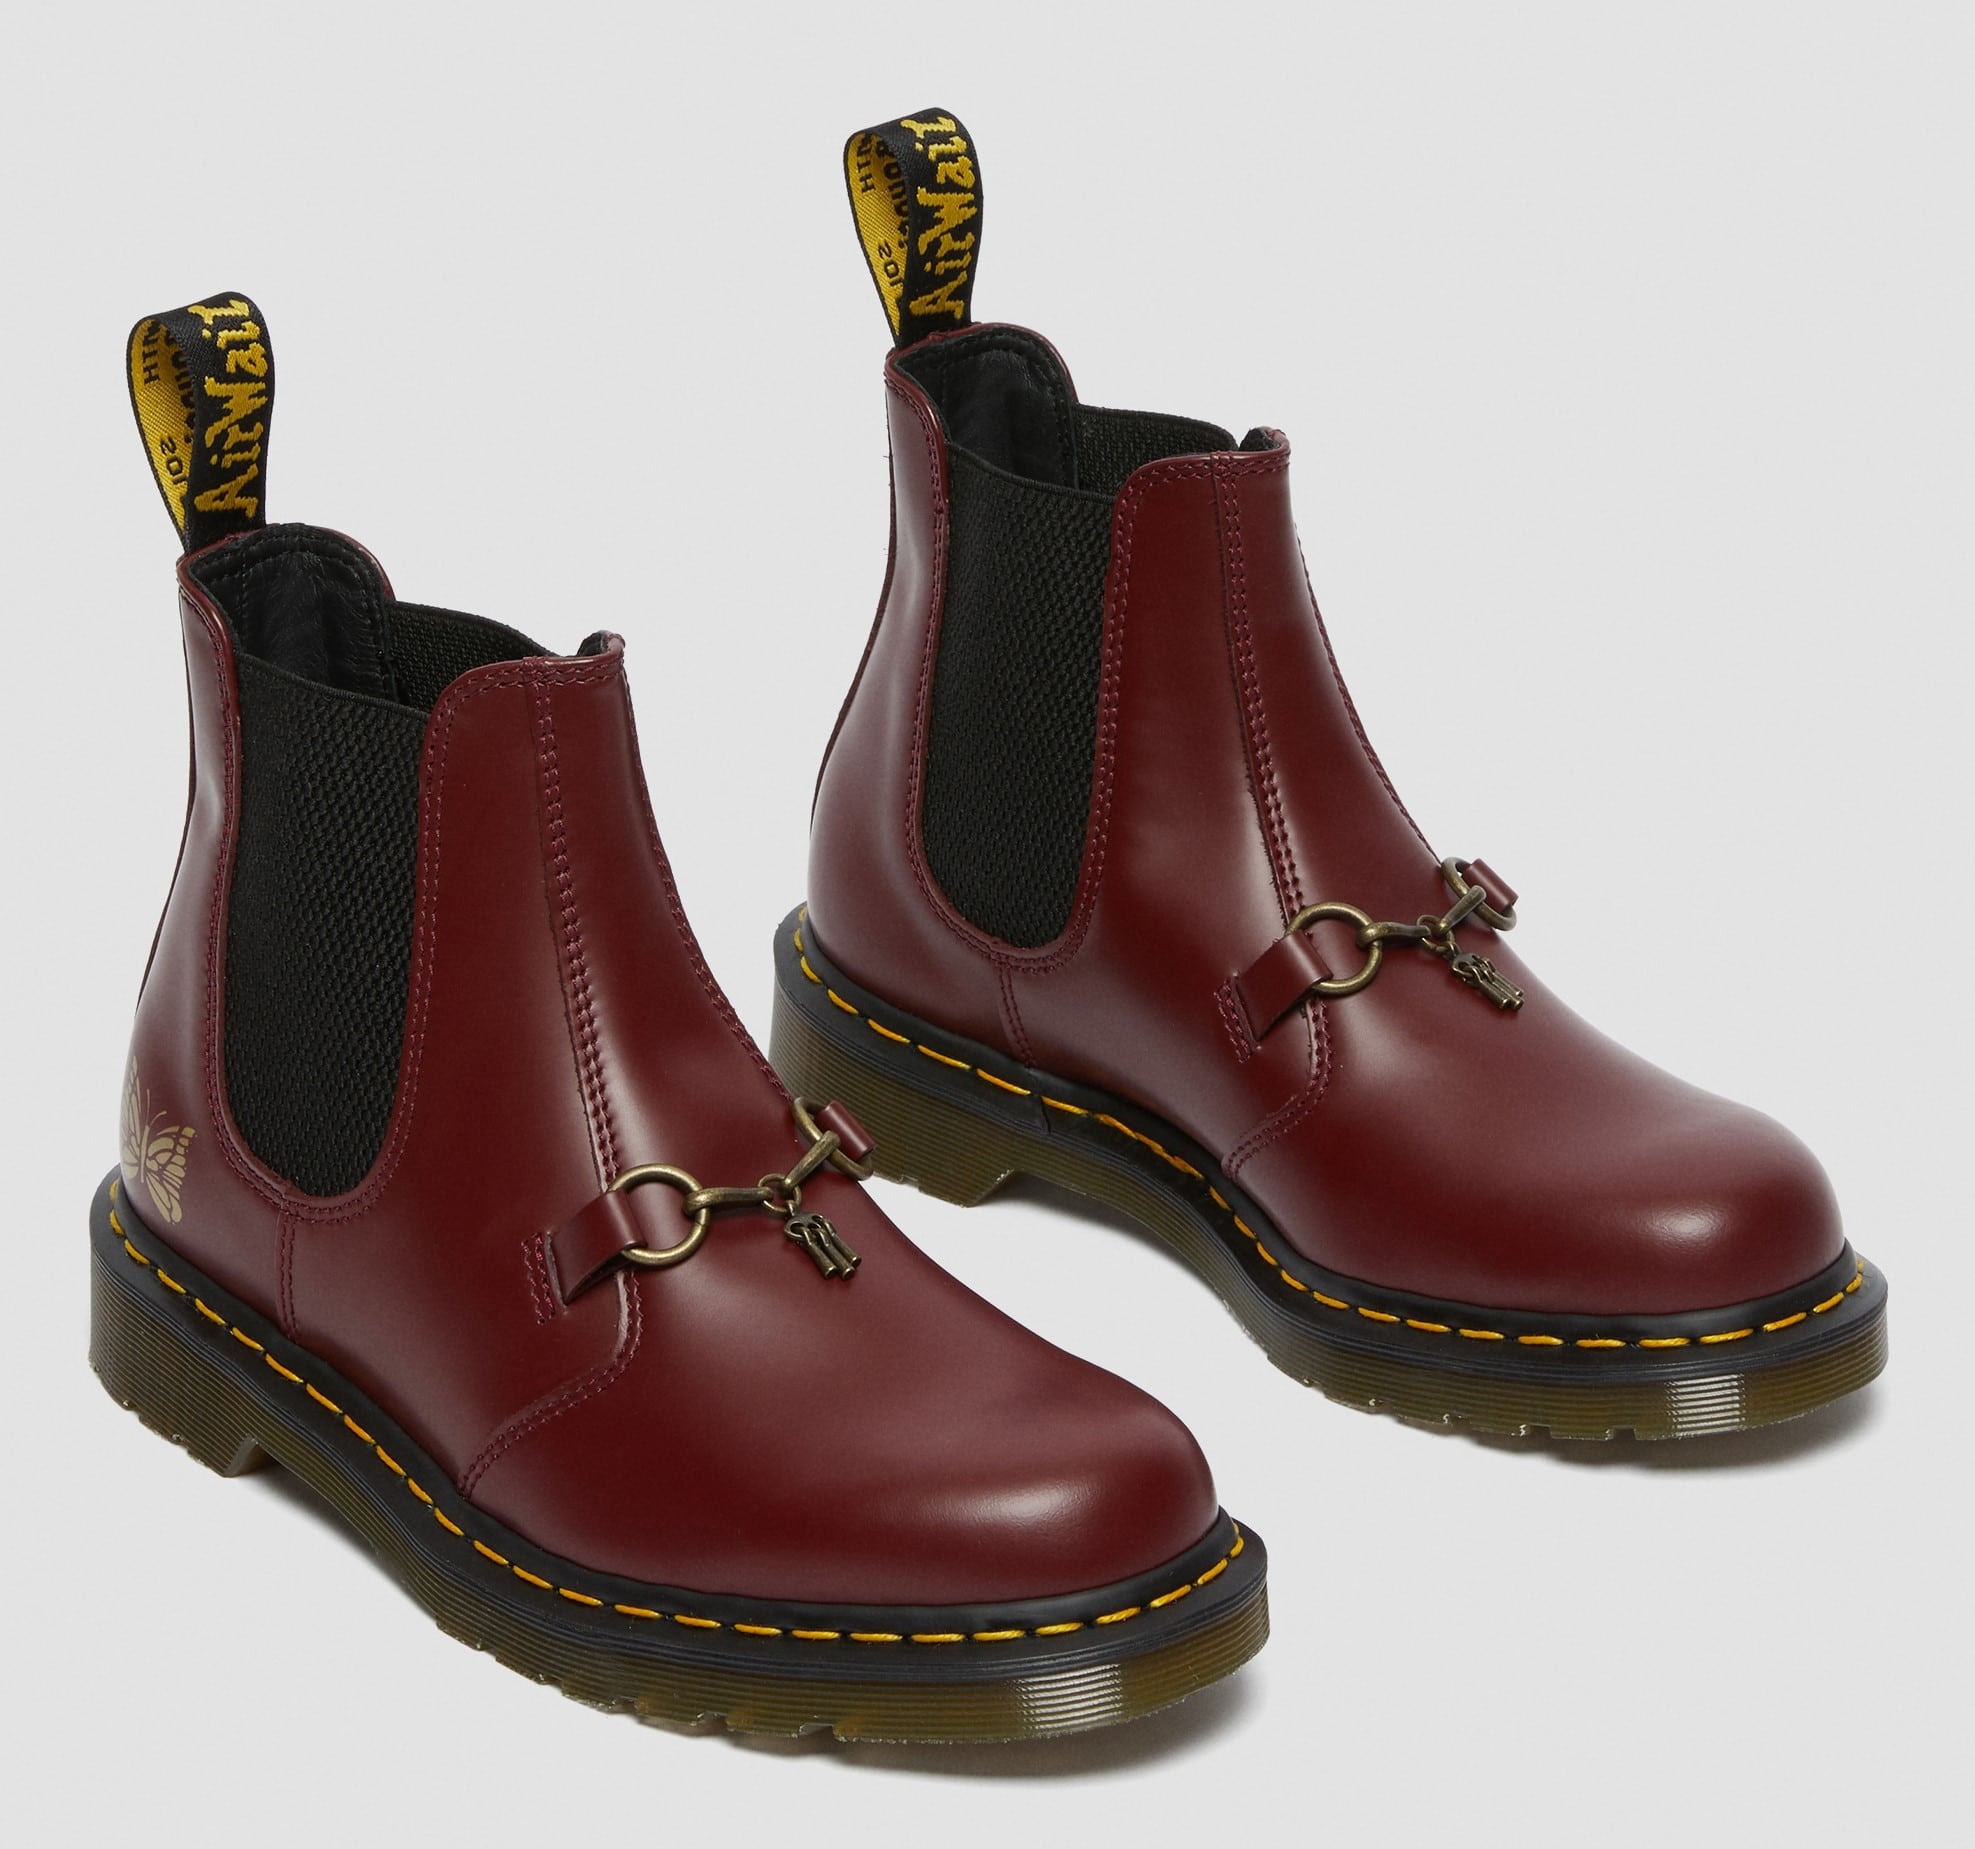 Dr. Martens Chelsea Boot gets an old-school Americana revamp from Needles 15